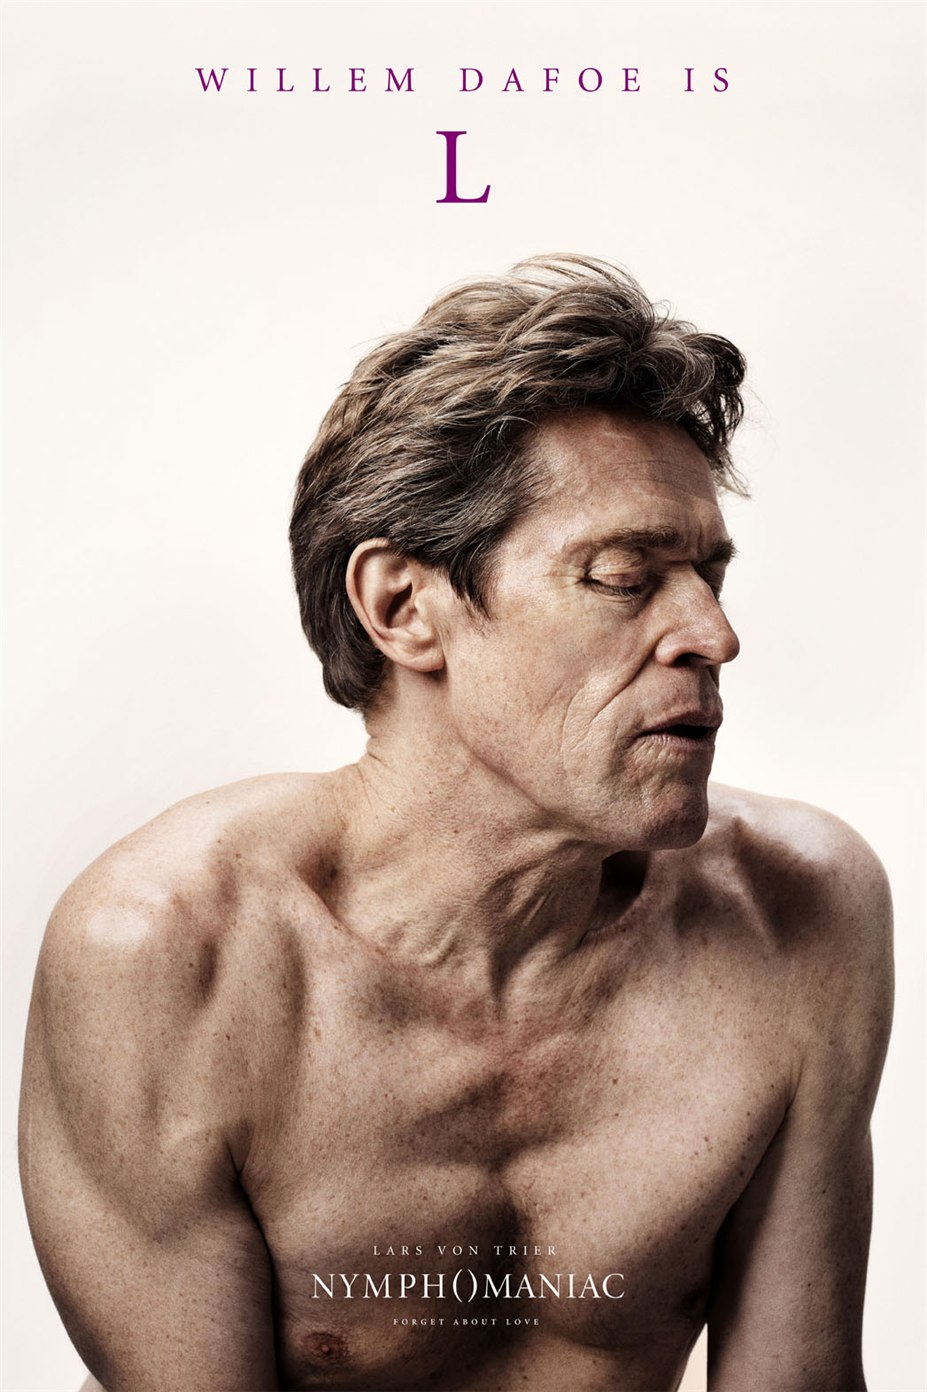 Постеры к фильму Нимфоманка / Nymphomaniac posters by Casper Sejersen - Willem Dafoe is L